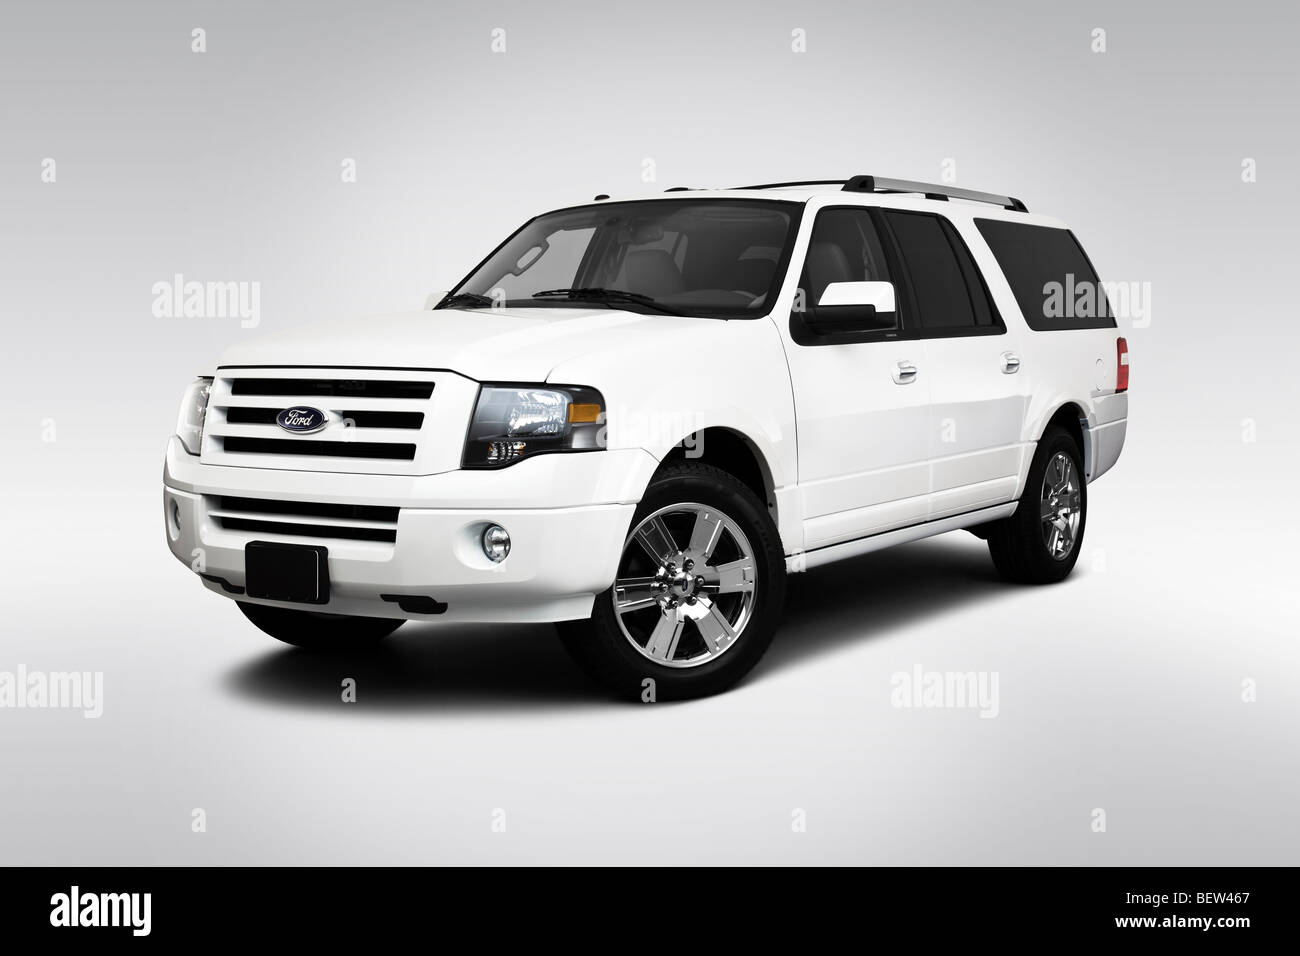 ford expedition stock photos ford expedition stock. Black Bedroom Furniture Sets. Home Design Ideas